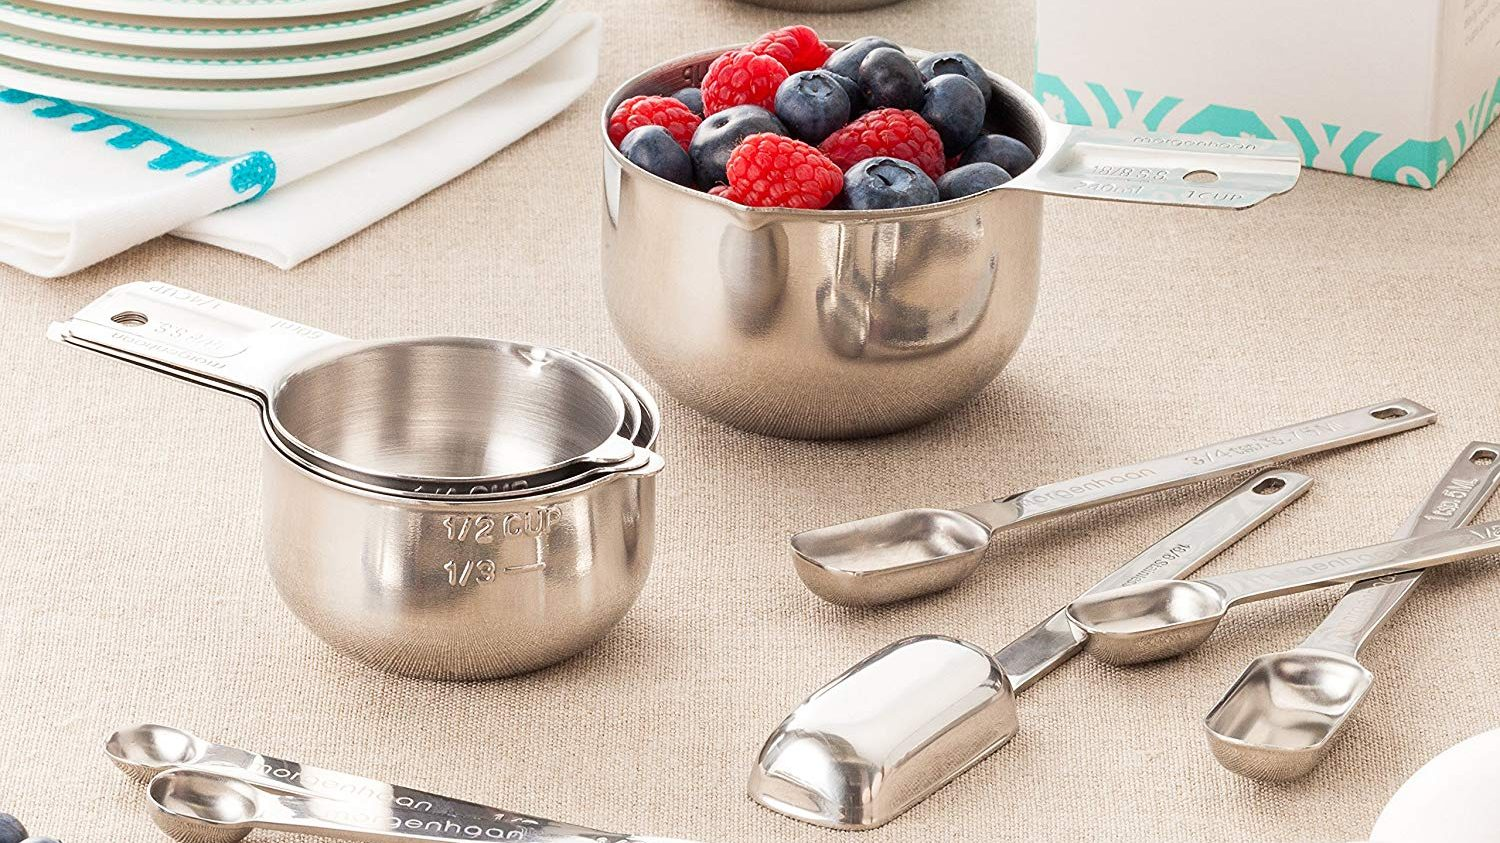 Best Measuring Cups and Spoons Set